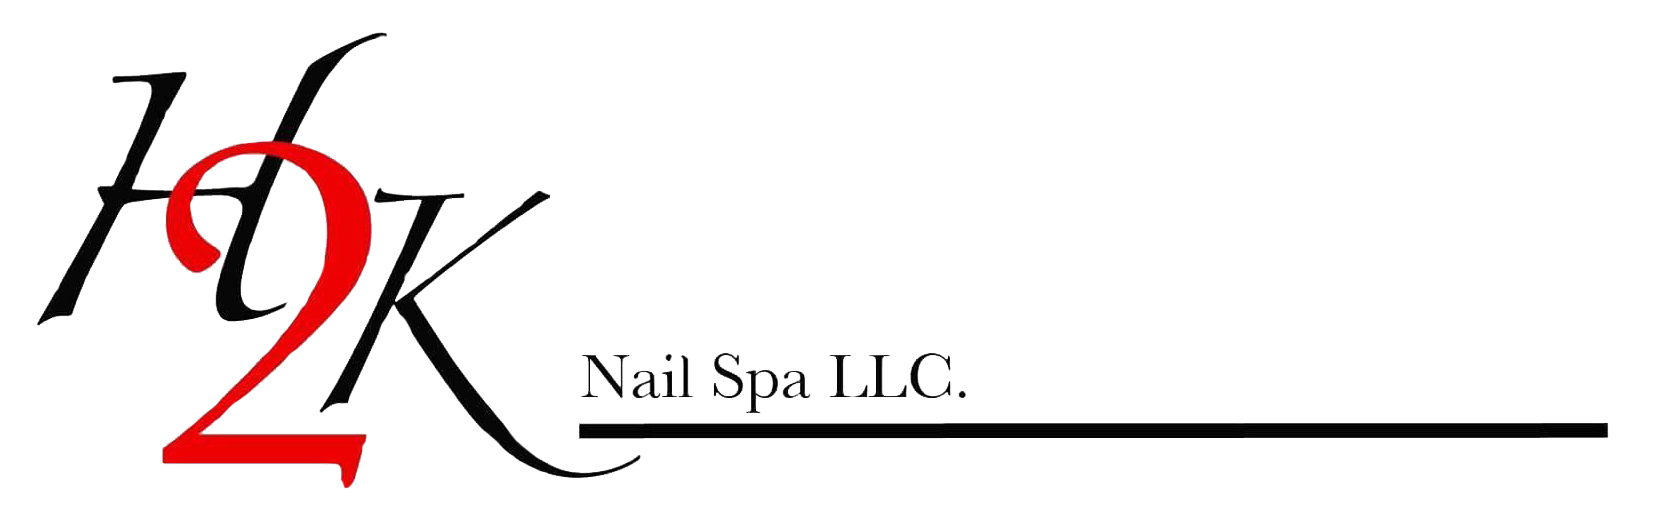 H2K Nail Spa 2 - Nail salon in Slidell, Louisiana 70460